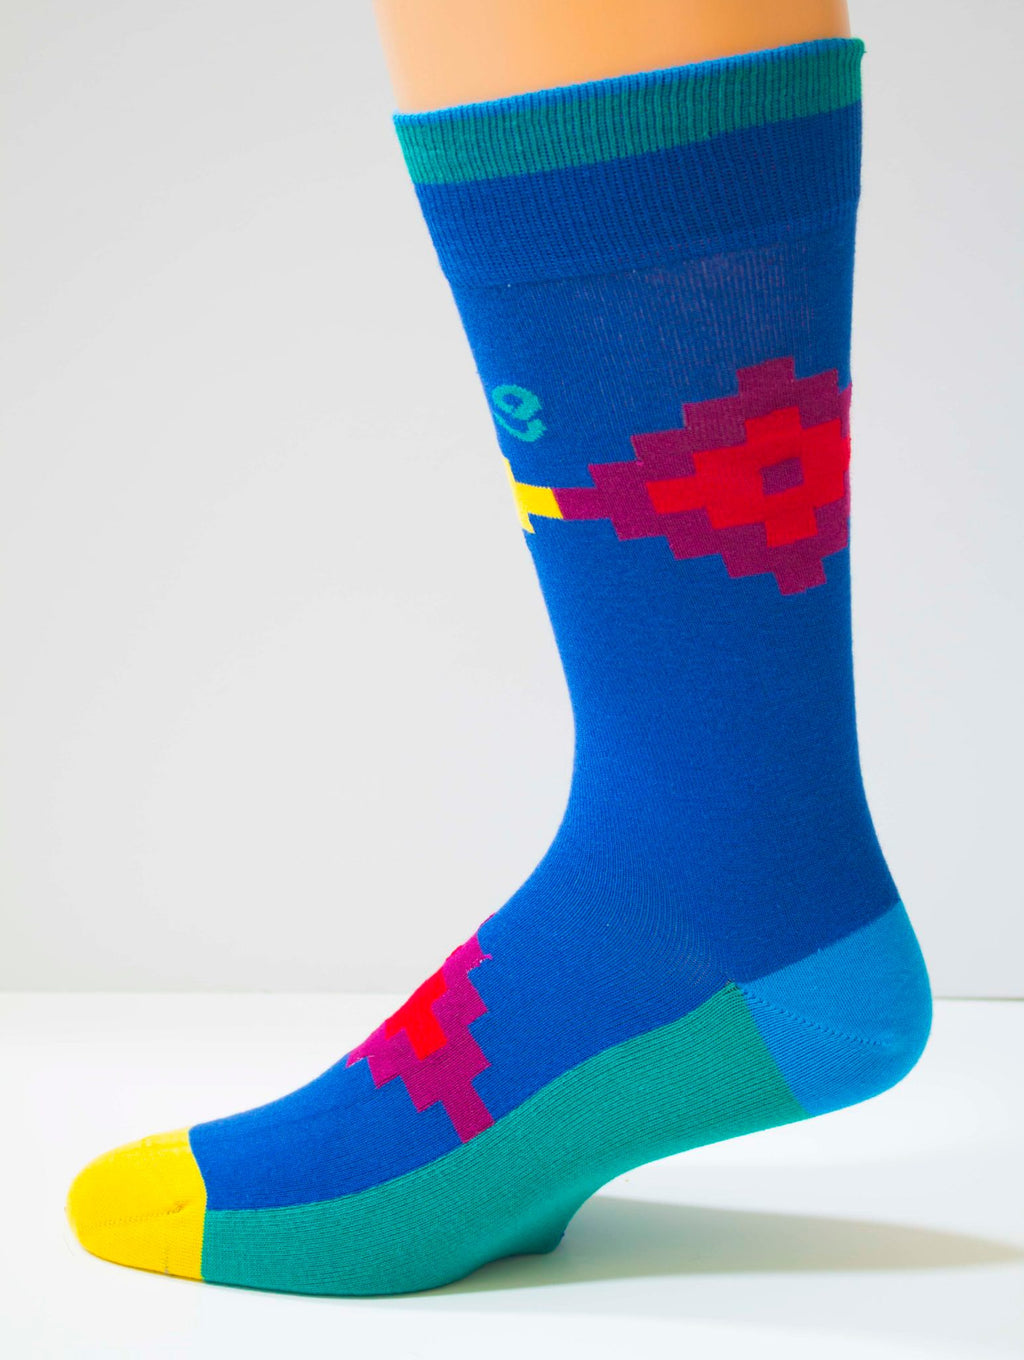 8 Bit Hero Women's Socks